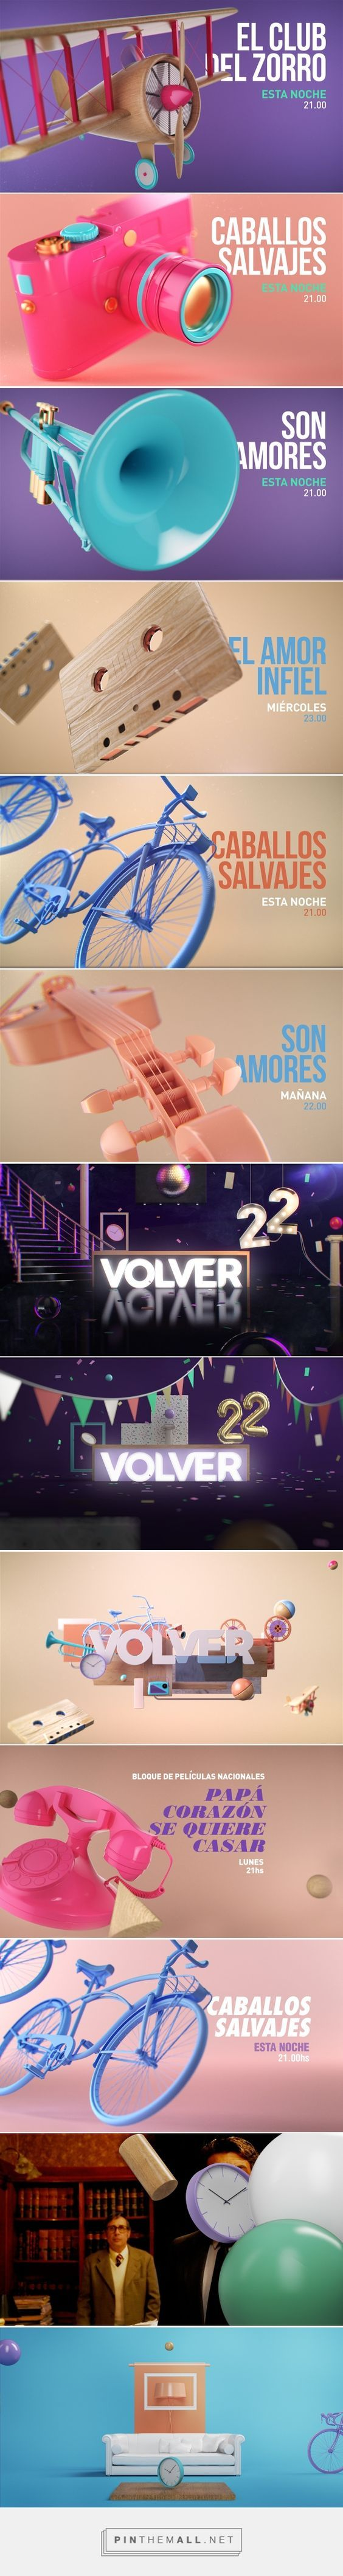 CANAL VOLVER on Behance - created via https://pinthemall.net: